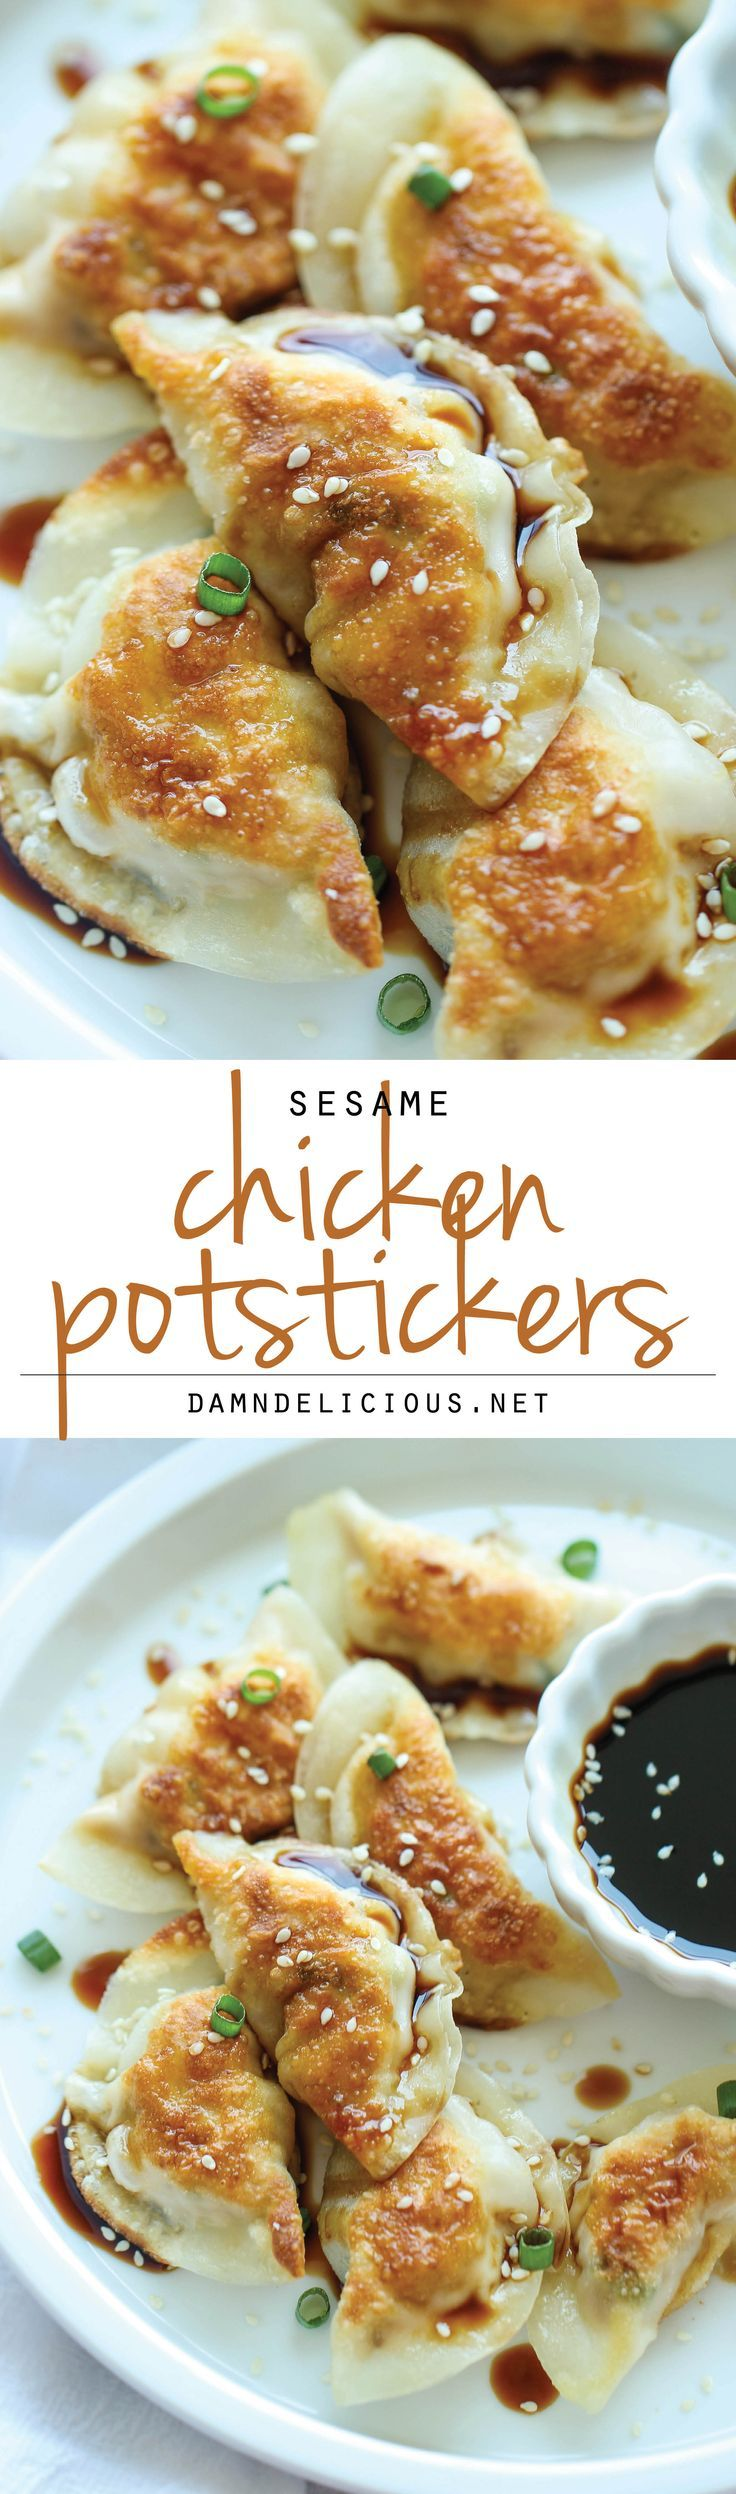 Sesame Chicken Potstickers 煎雞餃子 - These are easy to make and freezer-friendly. Perfect quick lunch or snack for #kids.